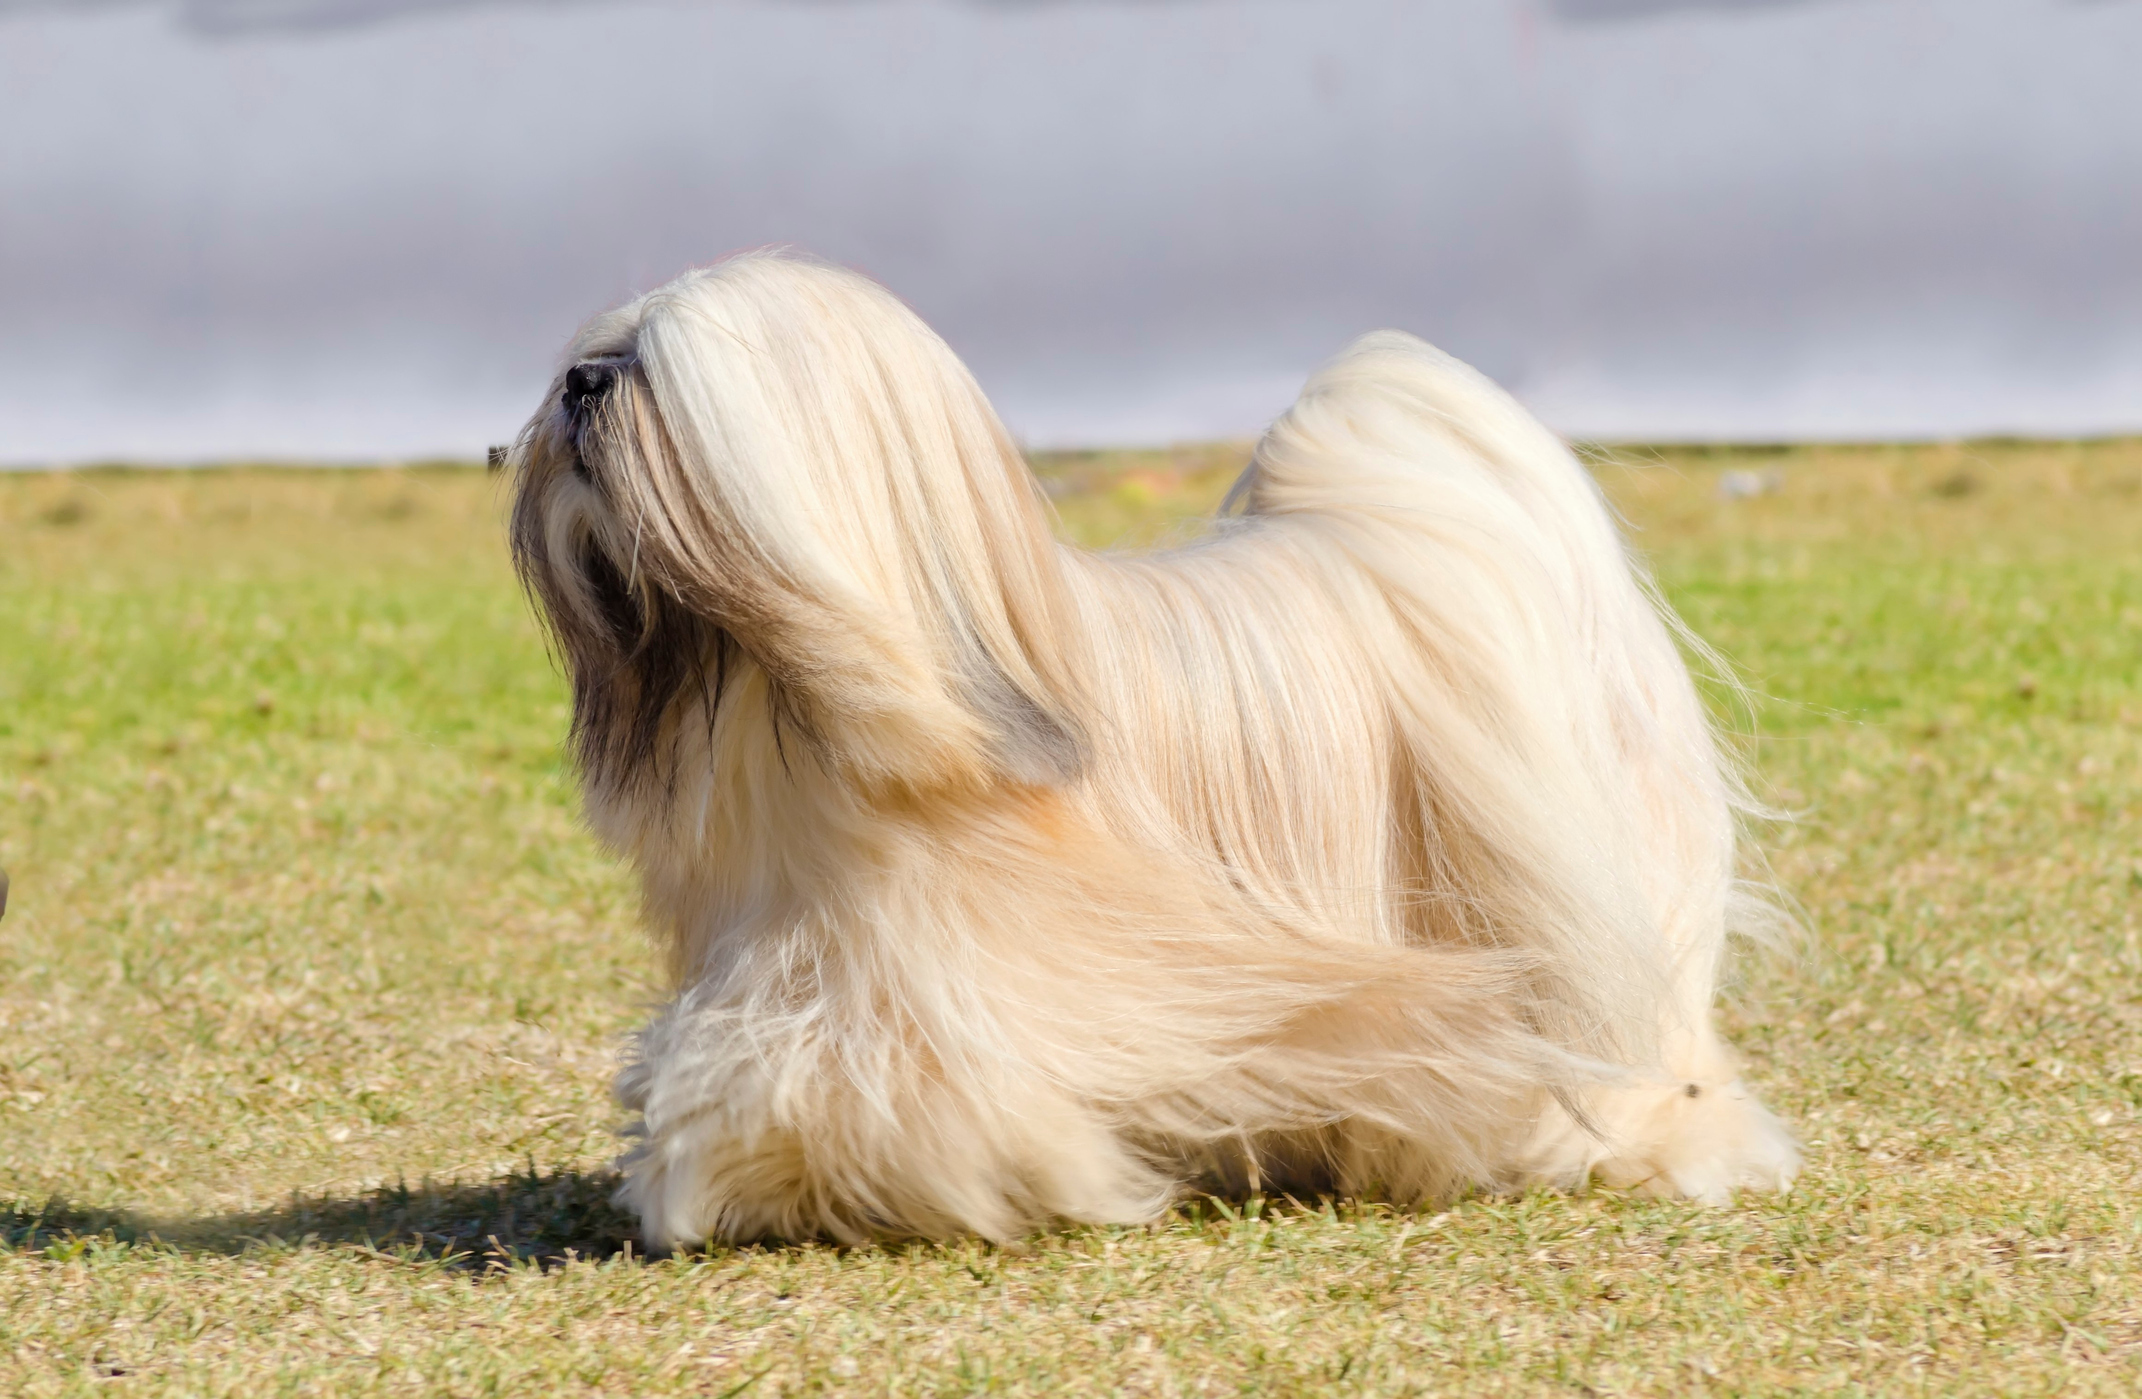 Sean also helps out a Lhasa Apso dog who has been diagnosed with diabetes